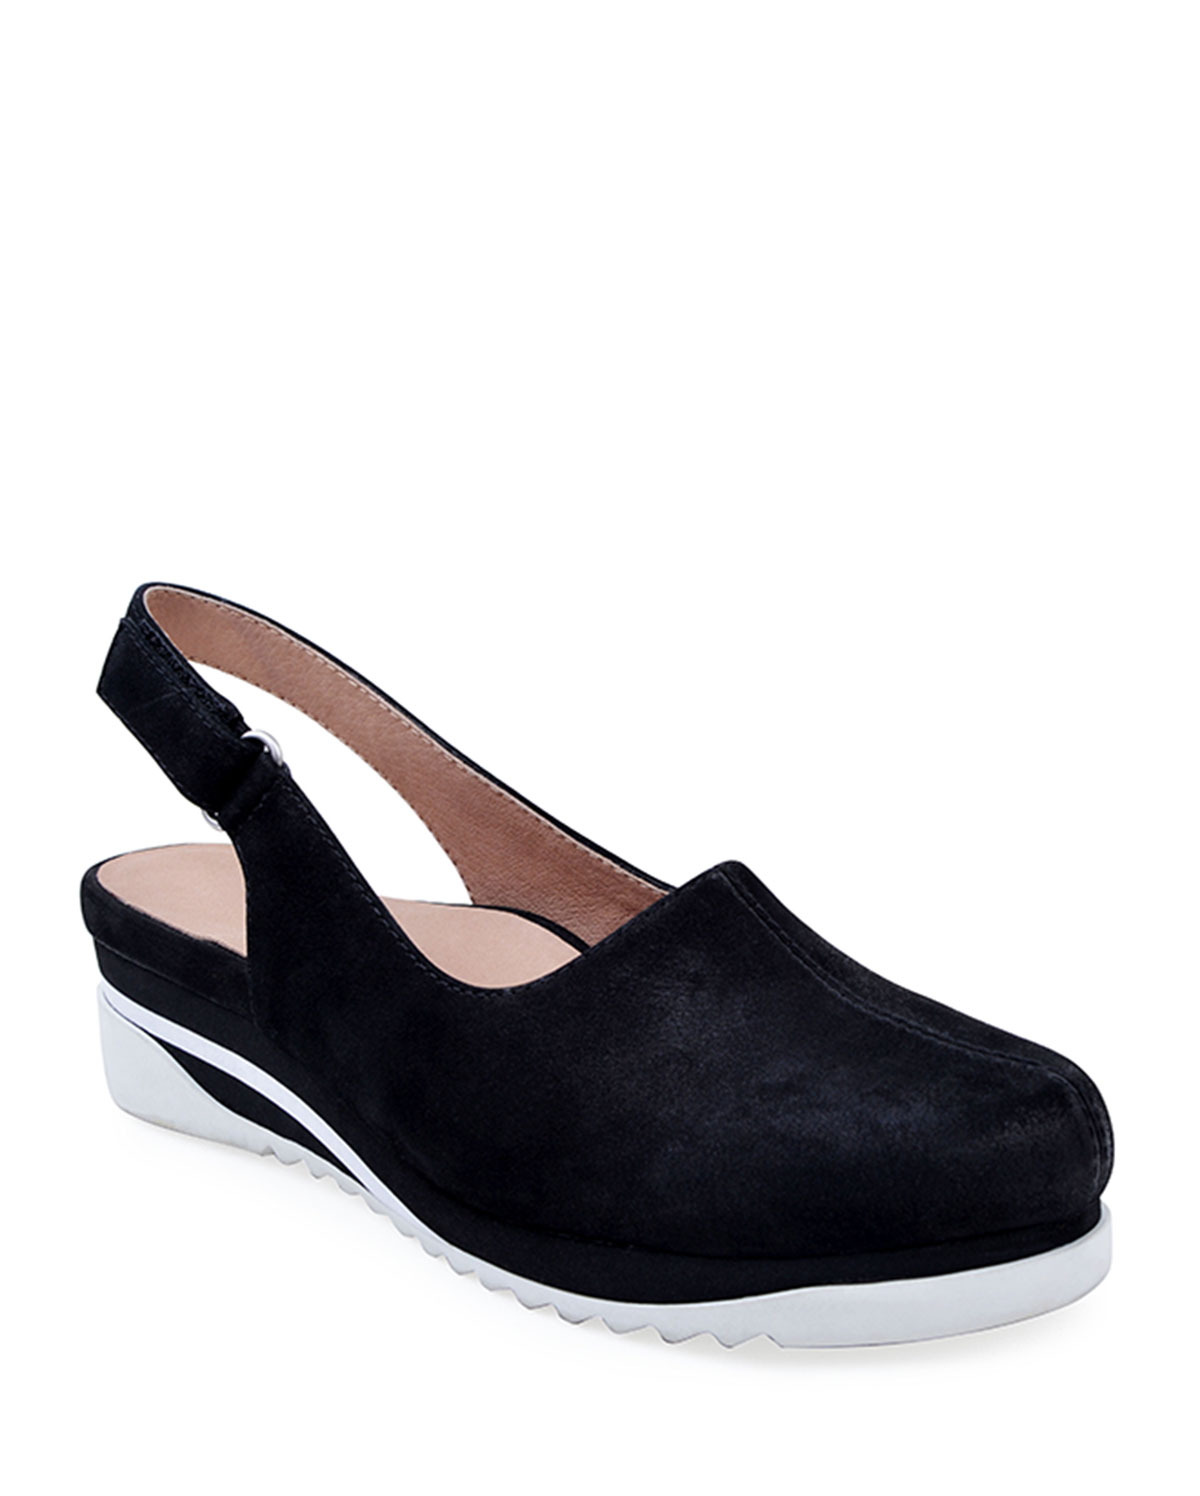 Taye Leather Slingback Clogs, Black